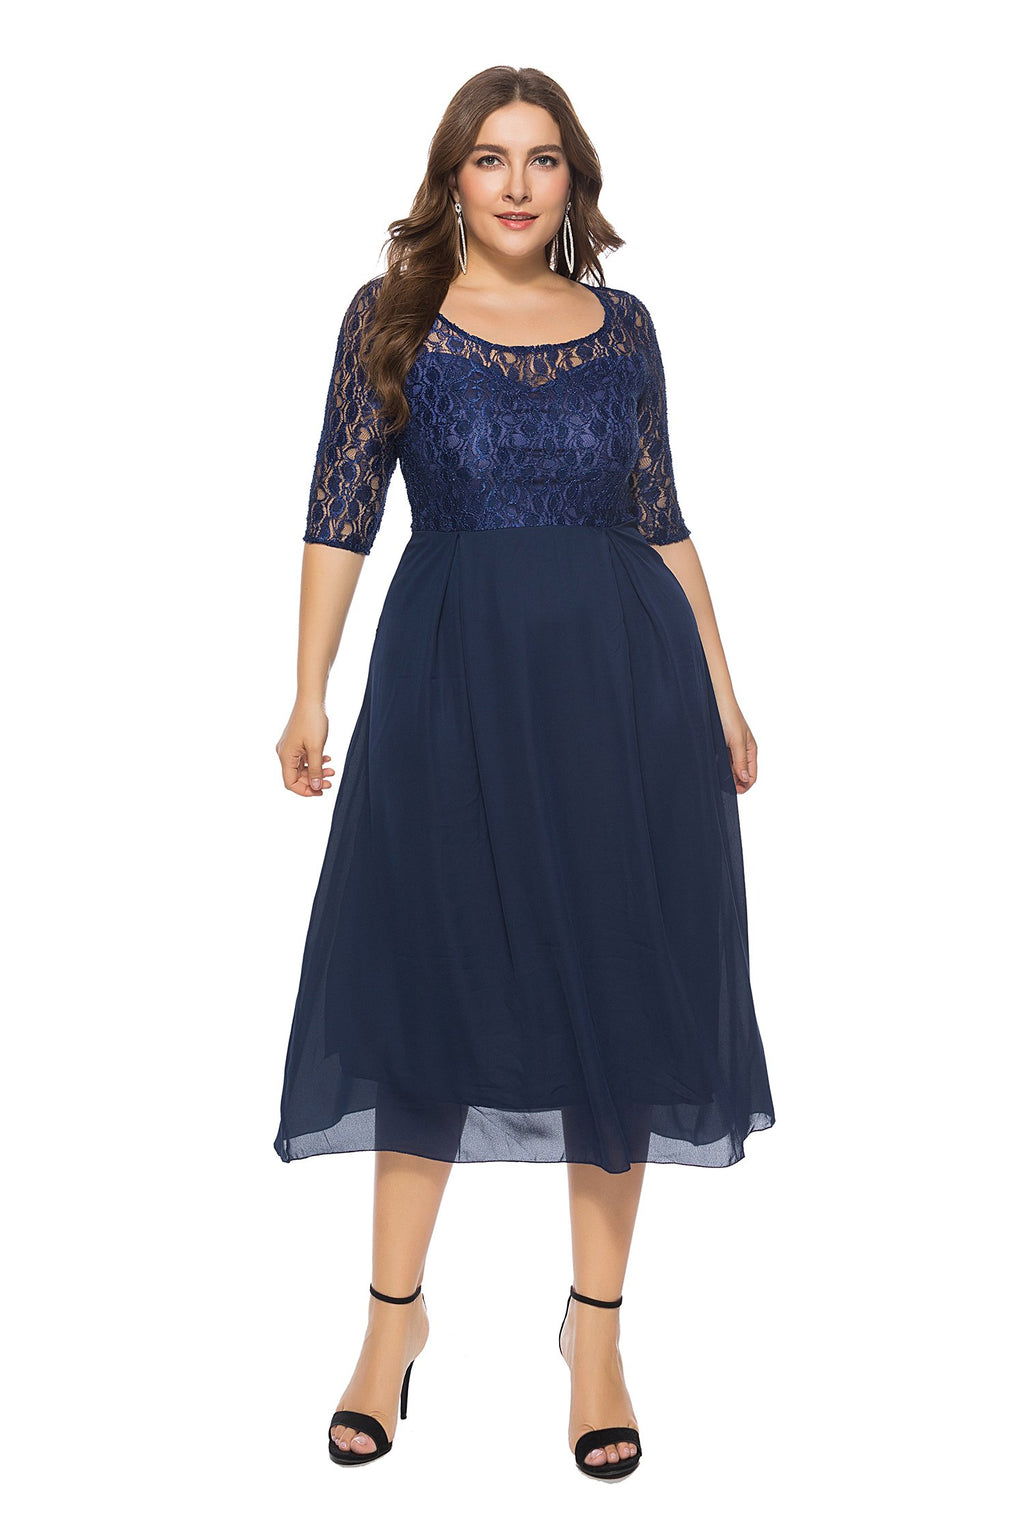 Royal Blue See-through Lace Hollow Top Elegant Midi Dress